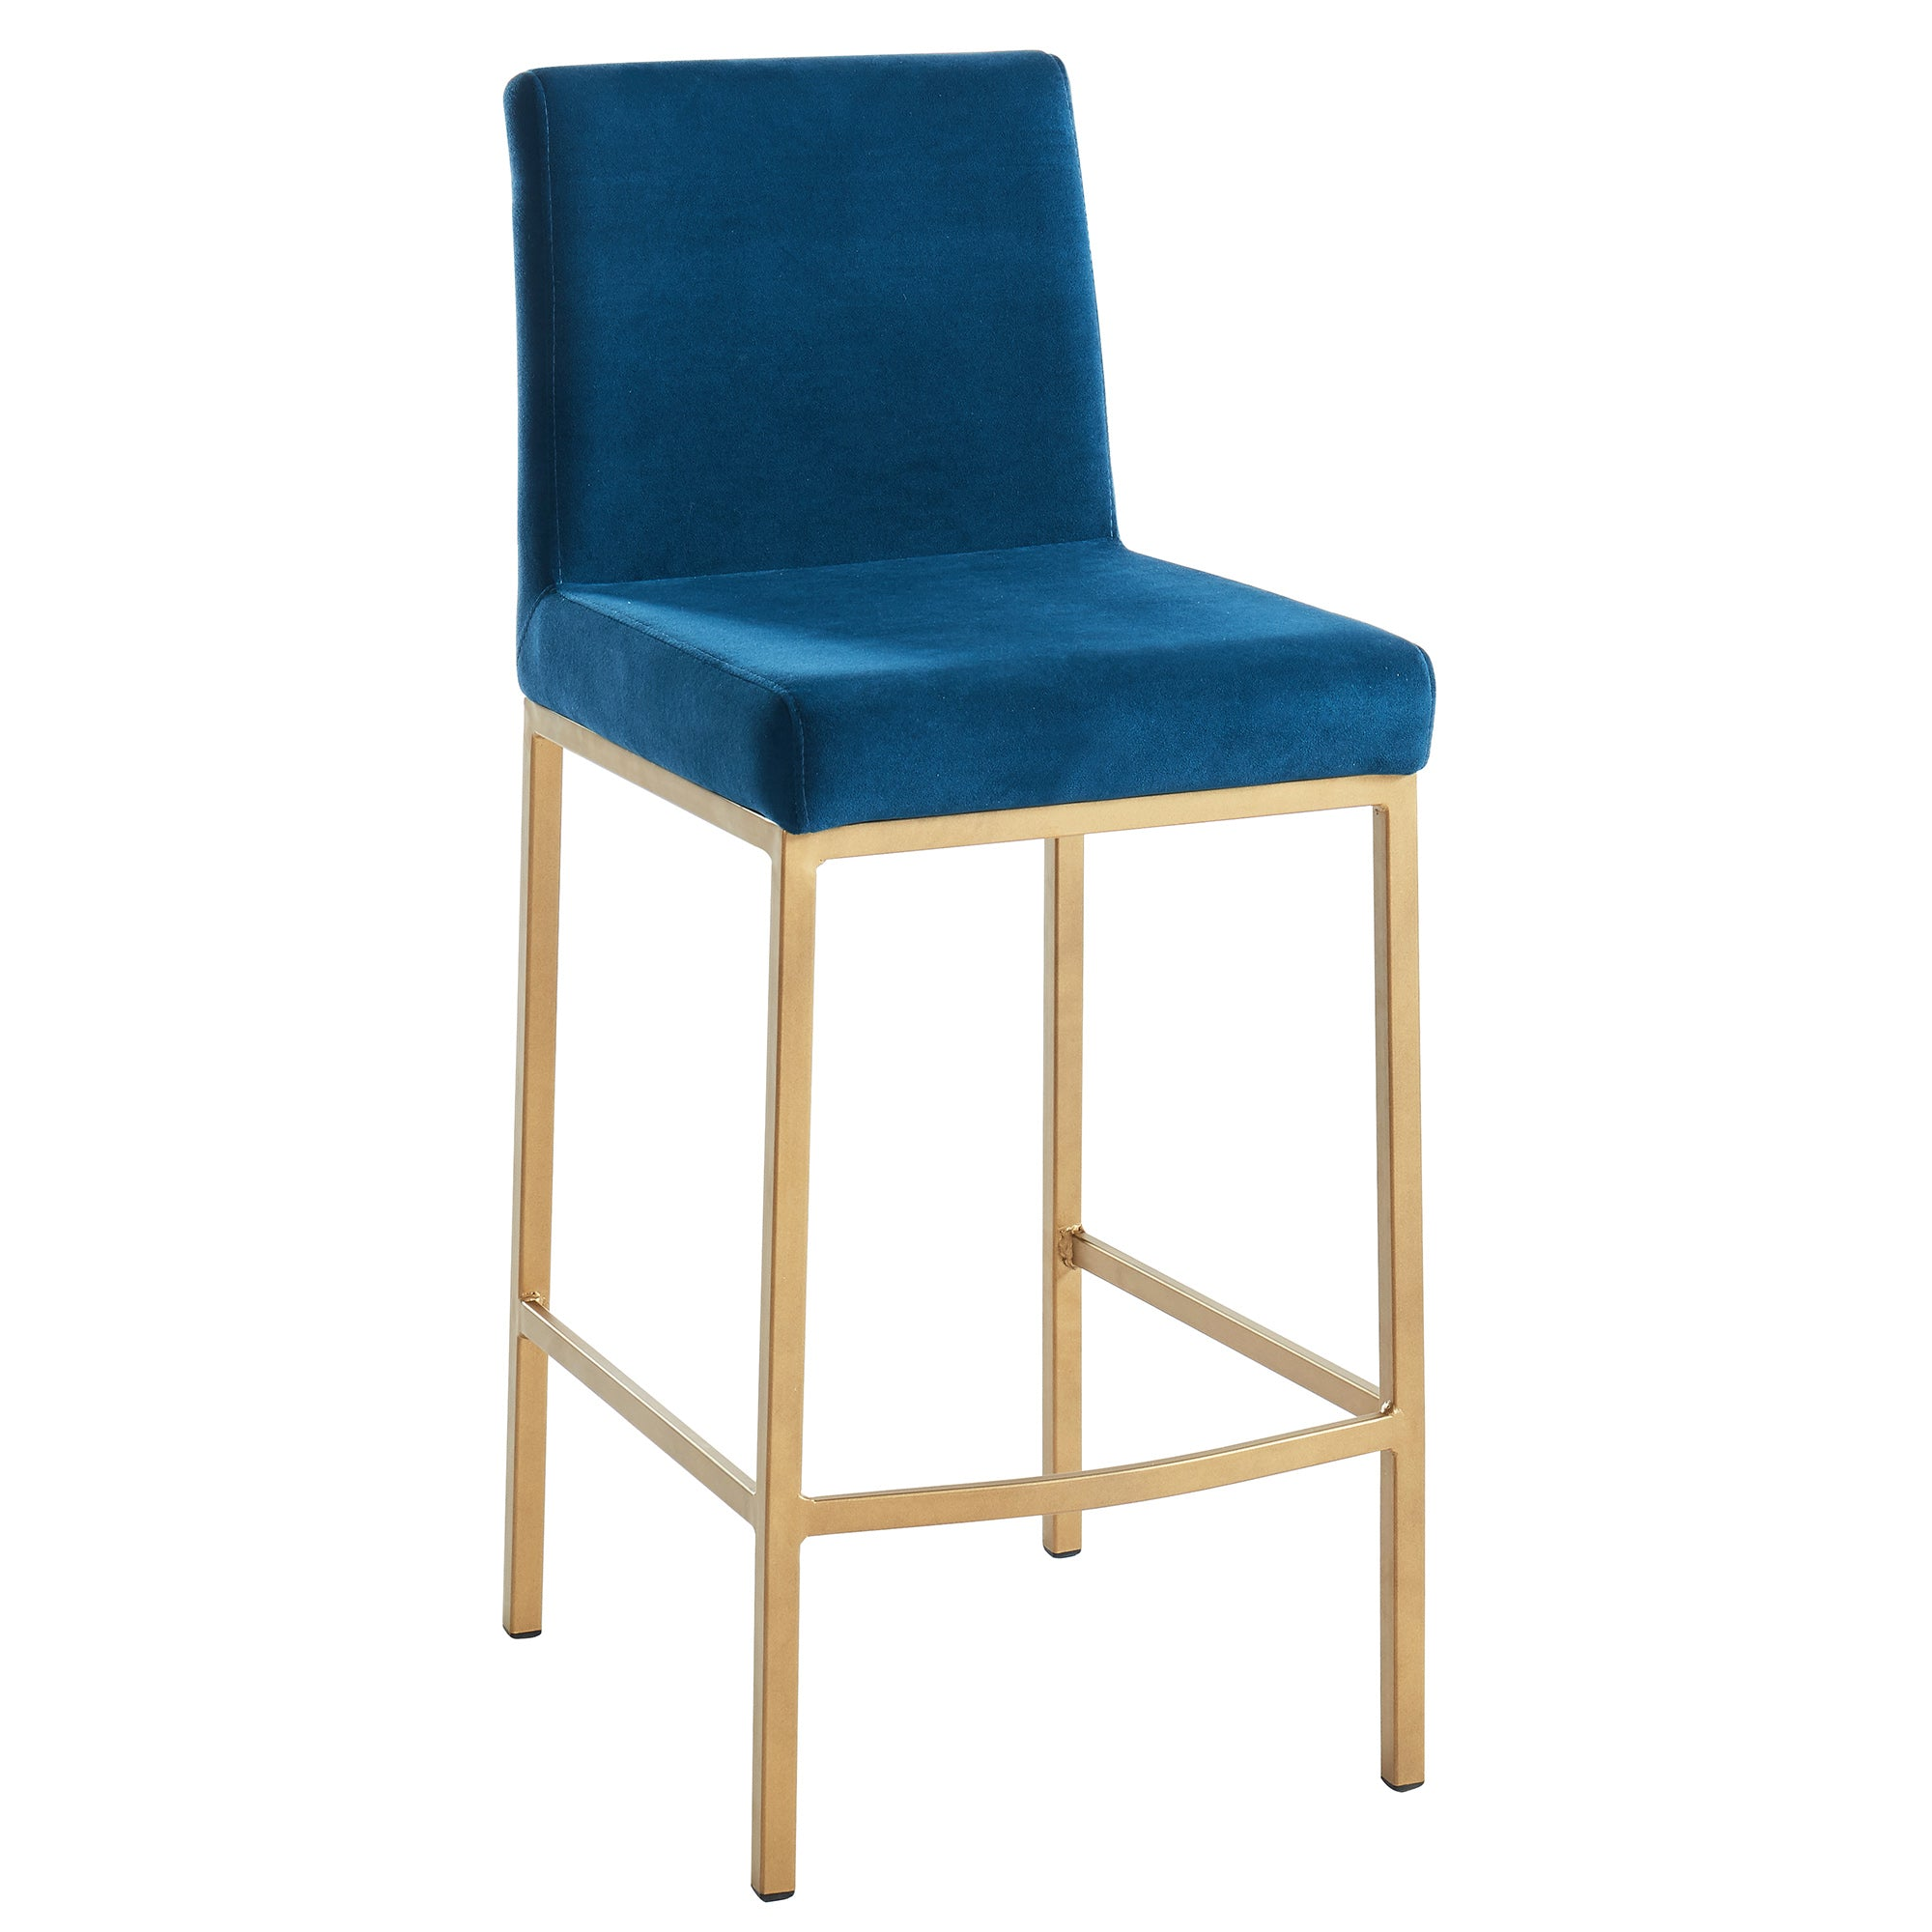 Diego Counter Stool - Blue/Gold Legs